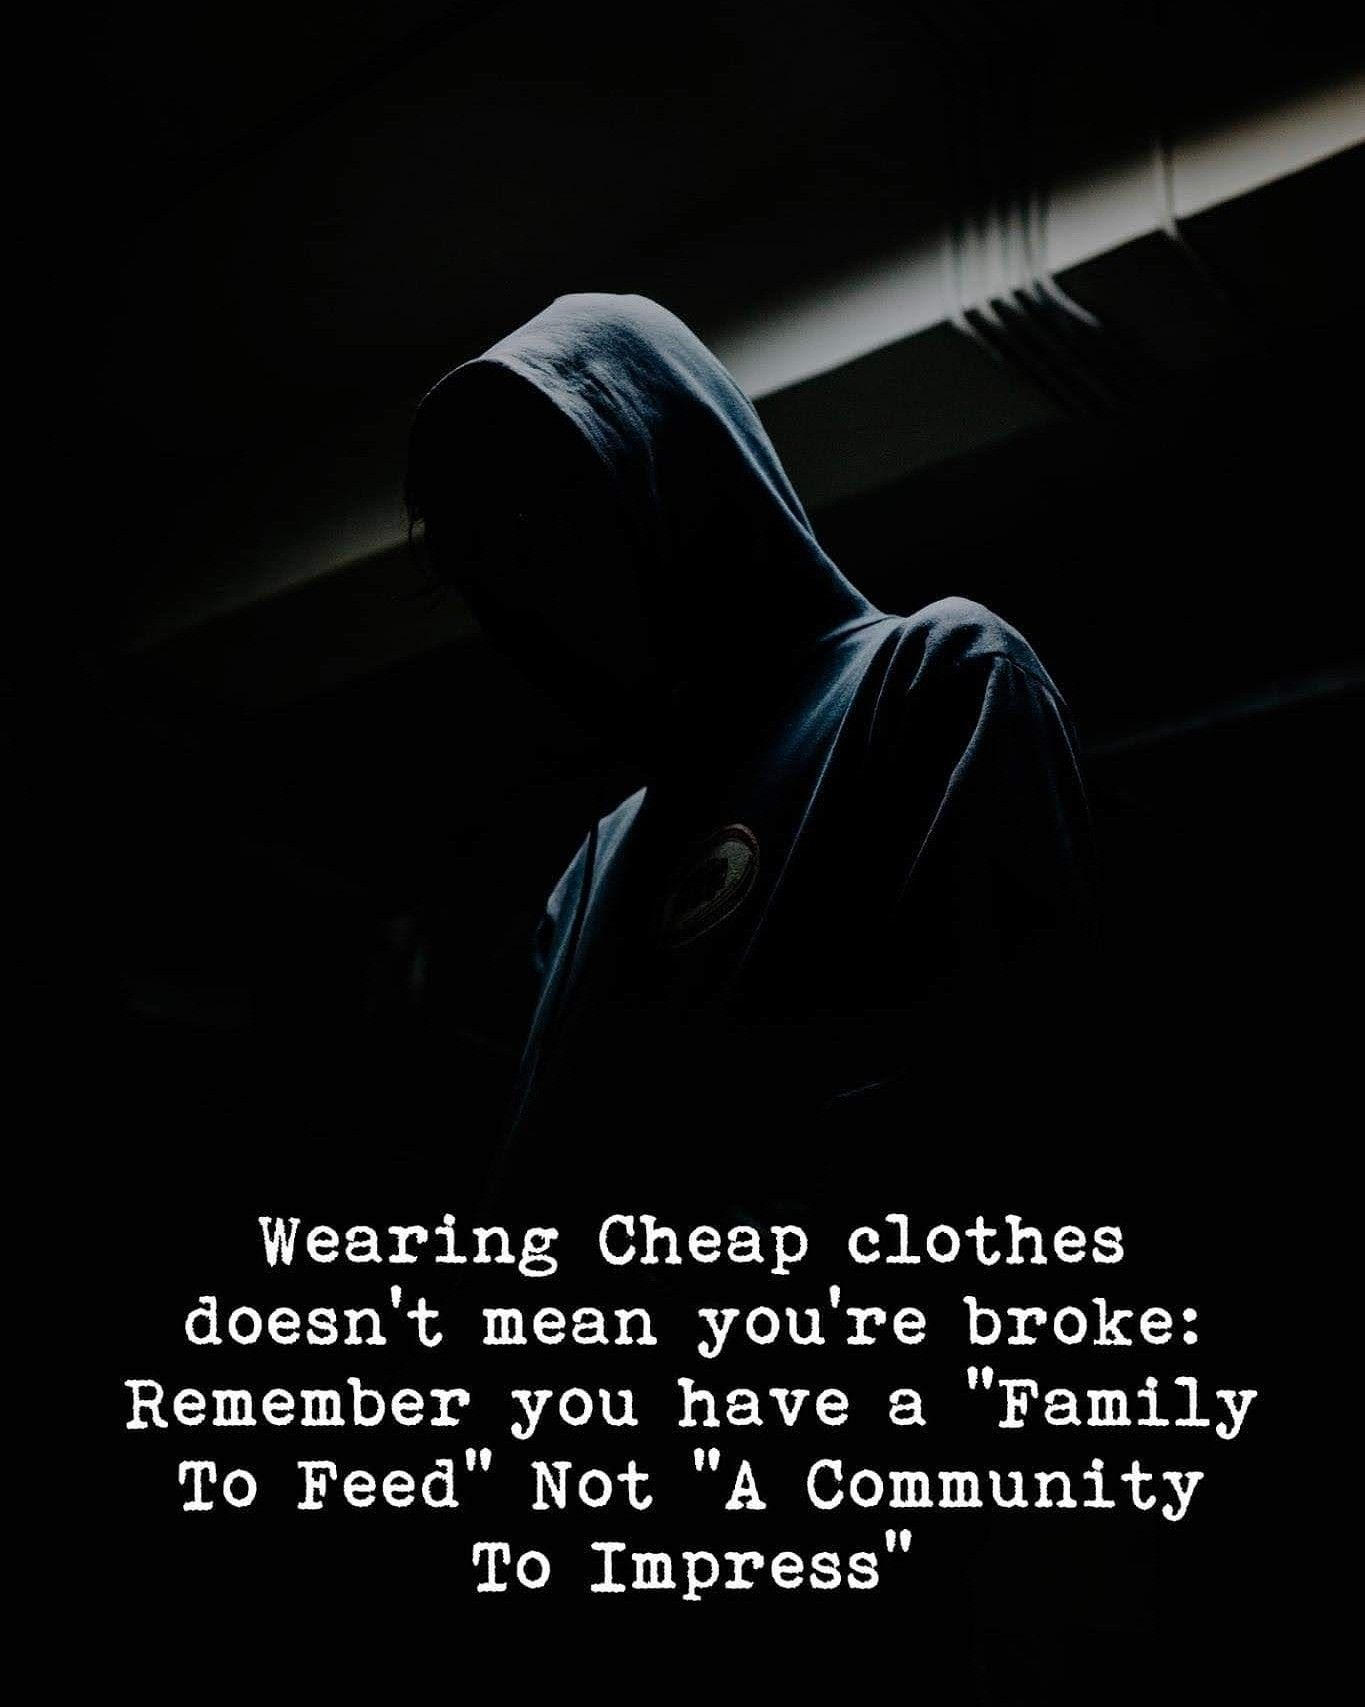 Wearing Cheap Clothes Doesn T Mean You Are Broke Qoutes Foodforthought Lessonlearned Lessonoflife Lifeless Quotes To Live By Life Quotes Wisdom Quotes [ 1707 x 1365 Pixel ]